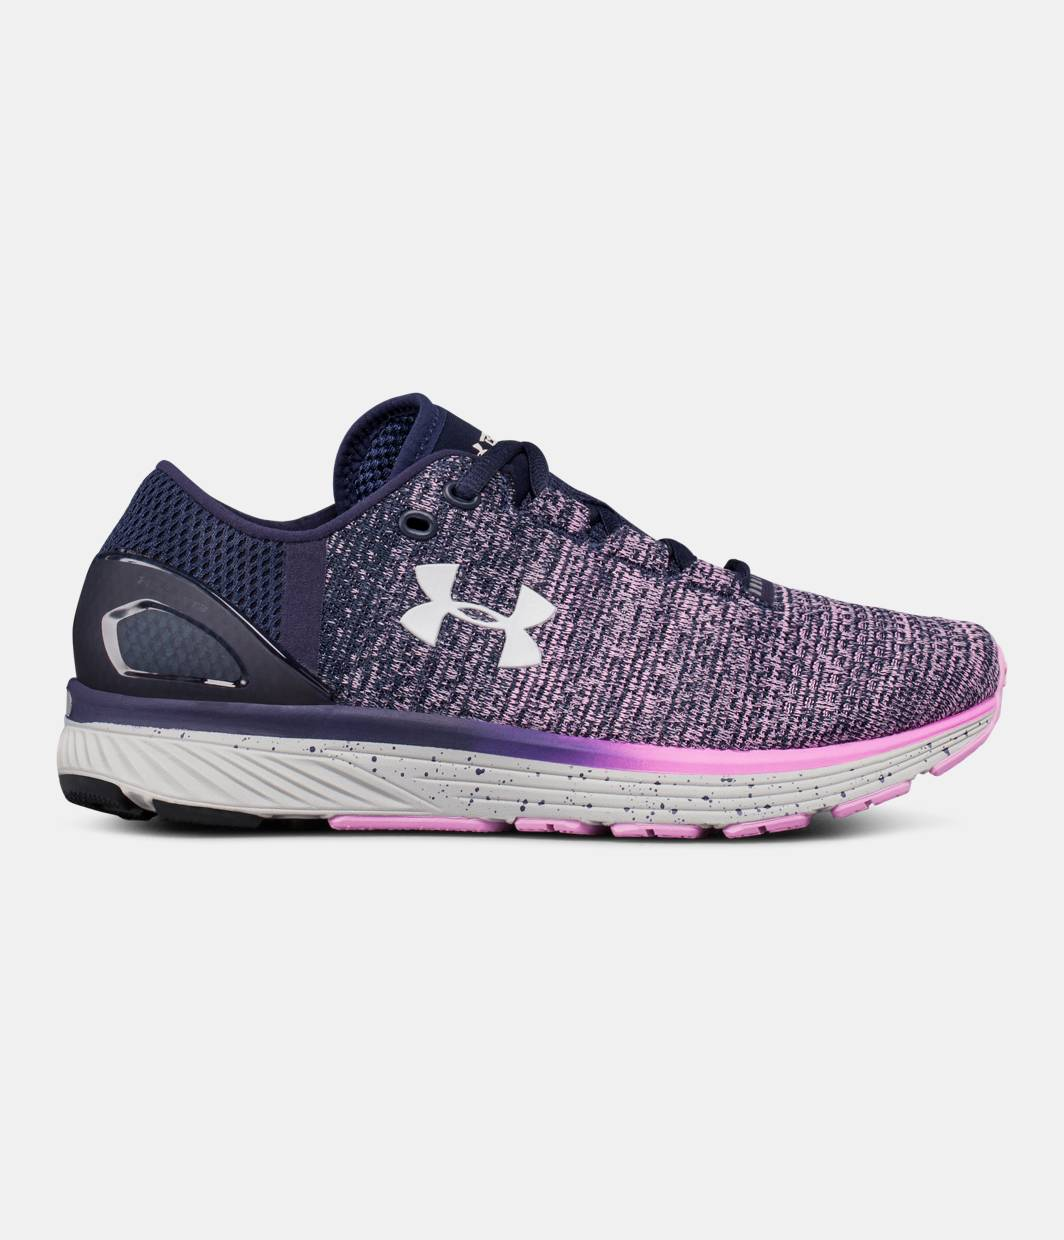 under armour womens shoes